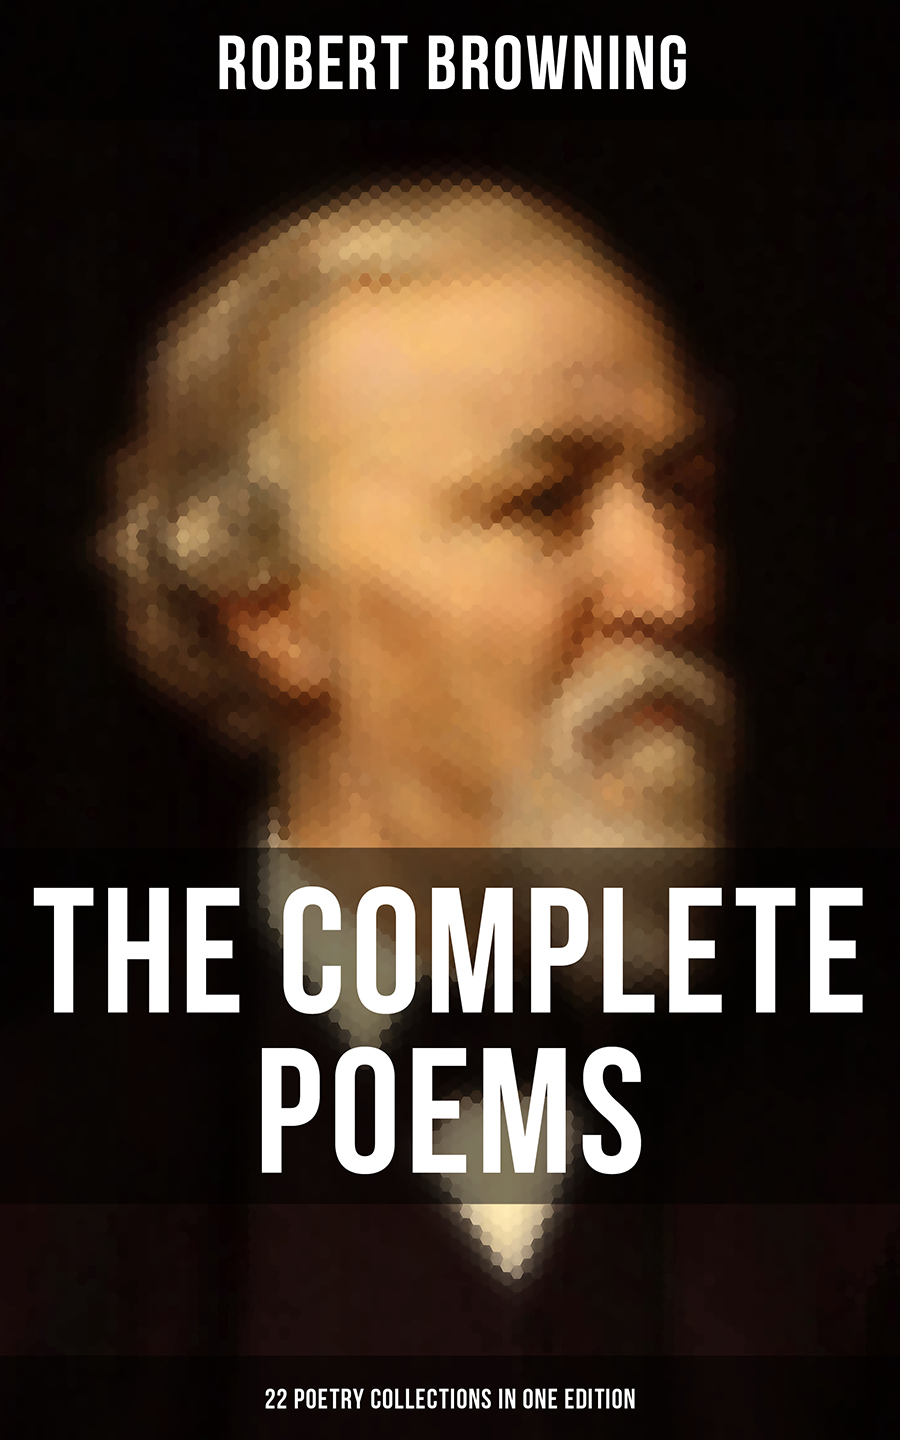 цена на Robert Browning The Complete Poems of Robert Browning - 22 Poetry Collections in One Edition